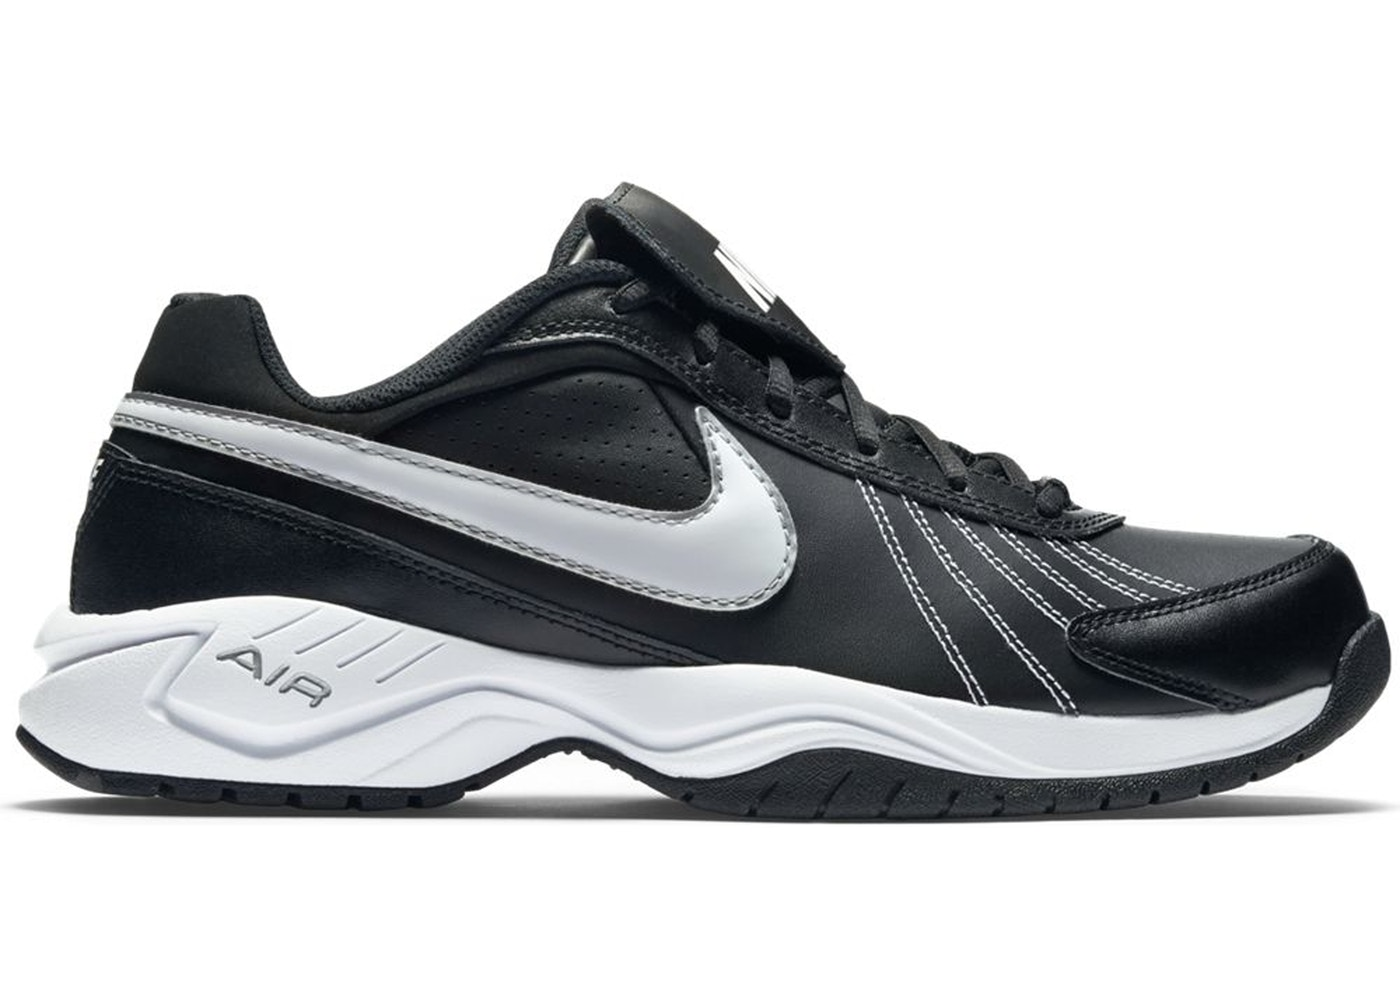 a73cfe742d2 Nike Shoes - Lowest Ask